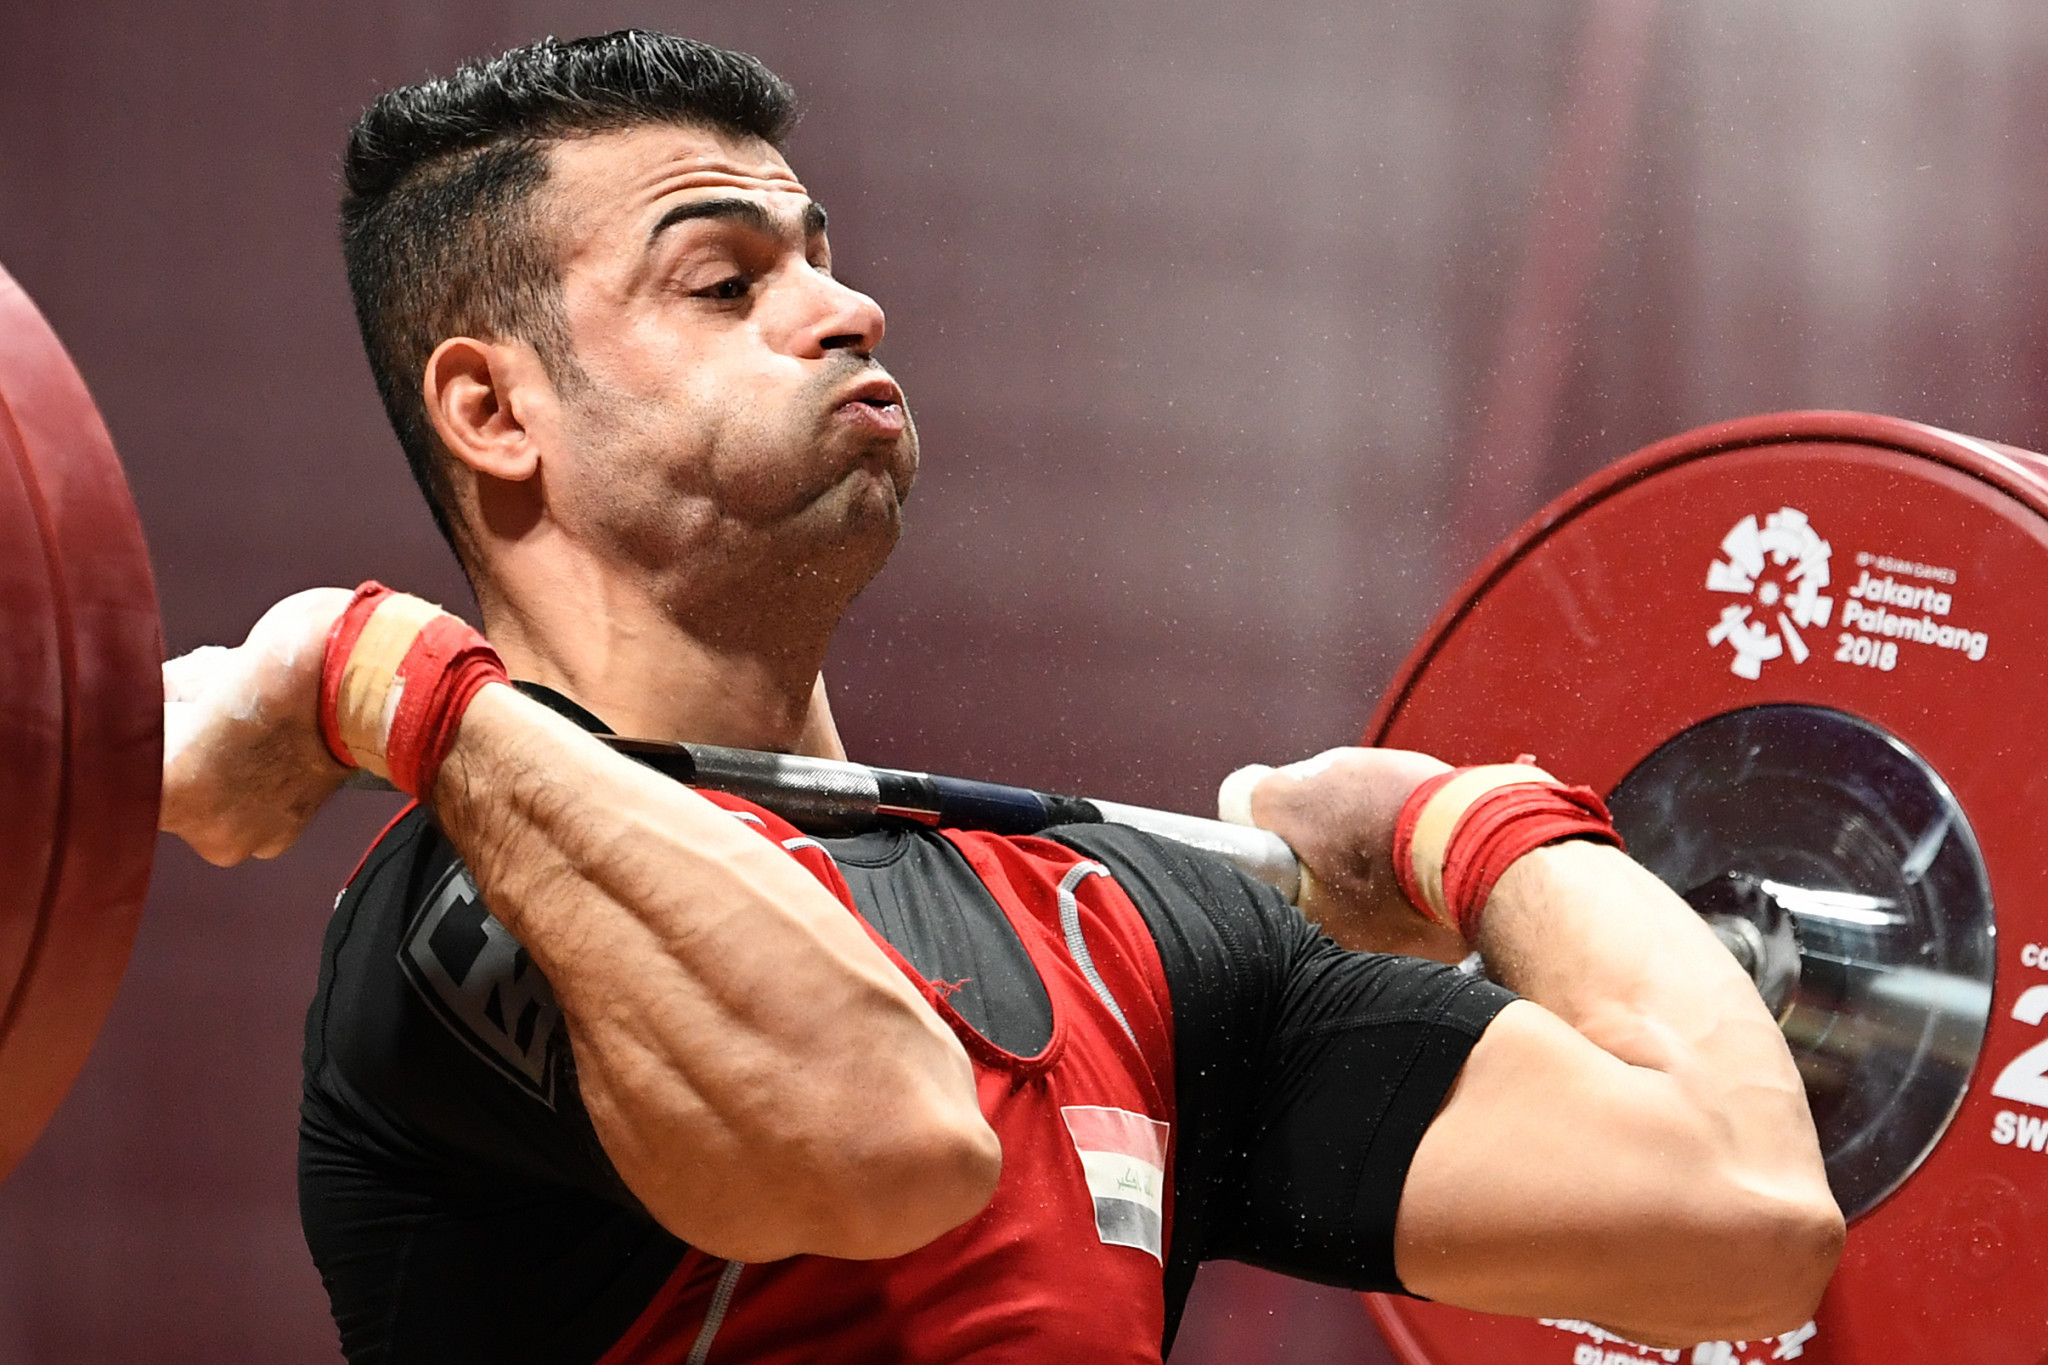 Three Iraqi weightlifters test positive and add intrigue to next IWF elections